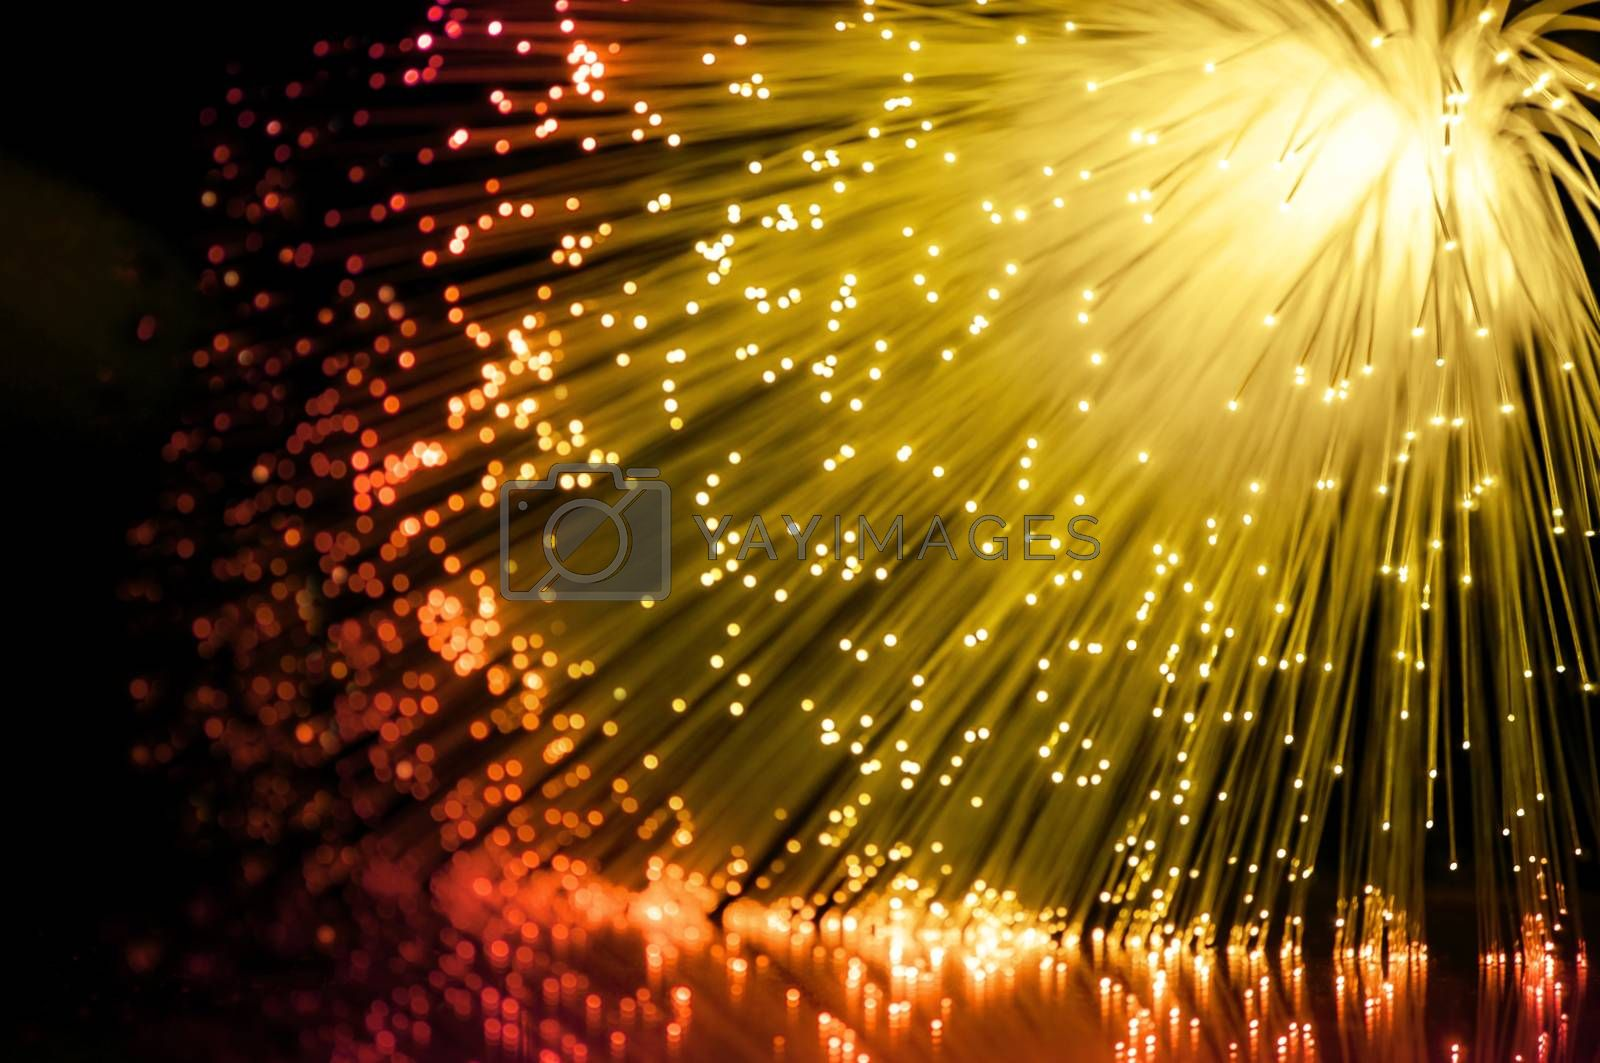 Abstract golden and red fiber optic scene arranged over black.